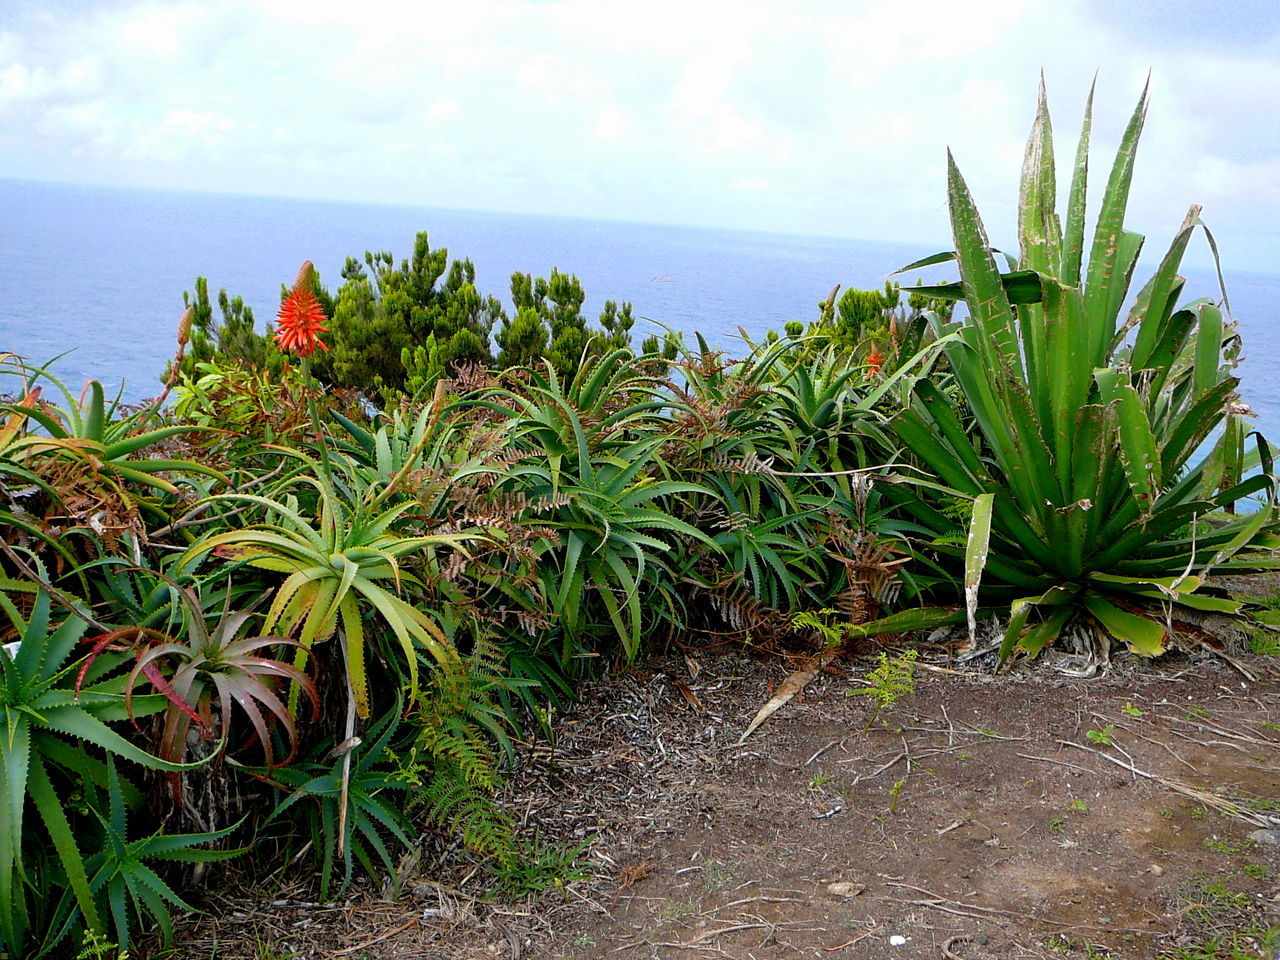 """""""Vasco De Gama"""" View ~ Azores Beauty In Nature Cactus Cactus Flower Cliff Edge Close-up Day Green Color Growth Leaf Nature No People Outdoors Plant Red Hot Poker  Sea Sky Succulents"""